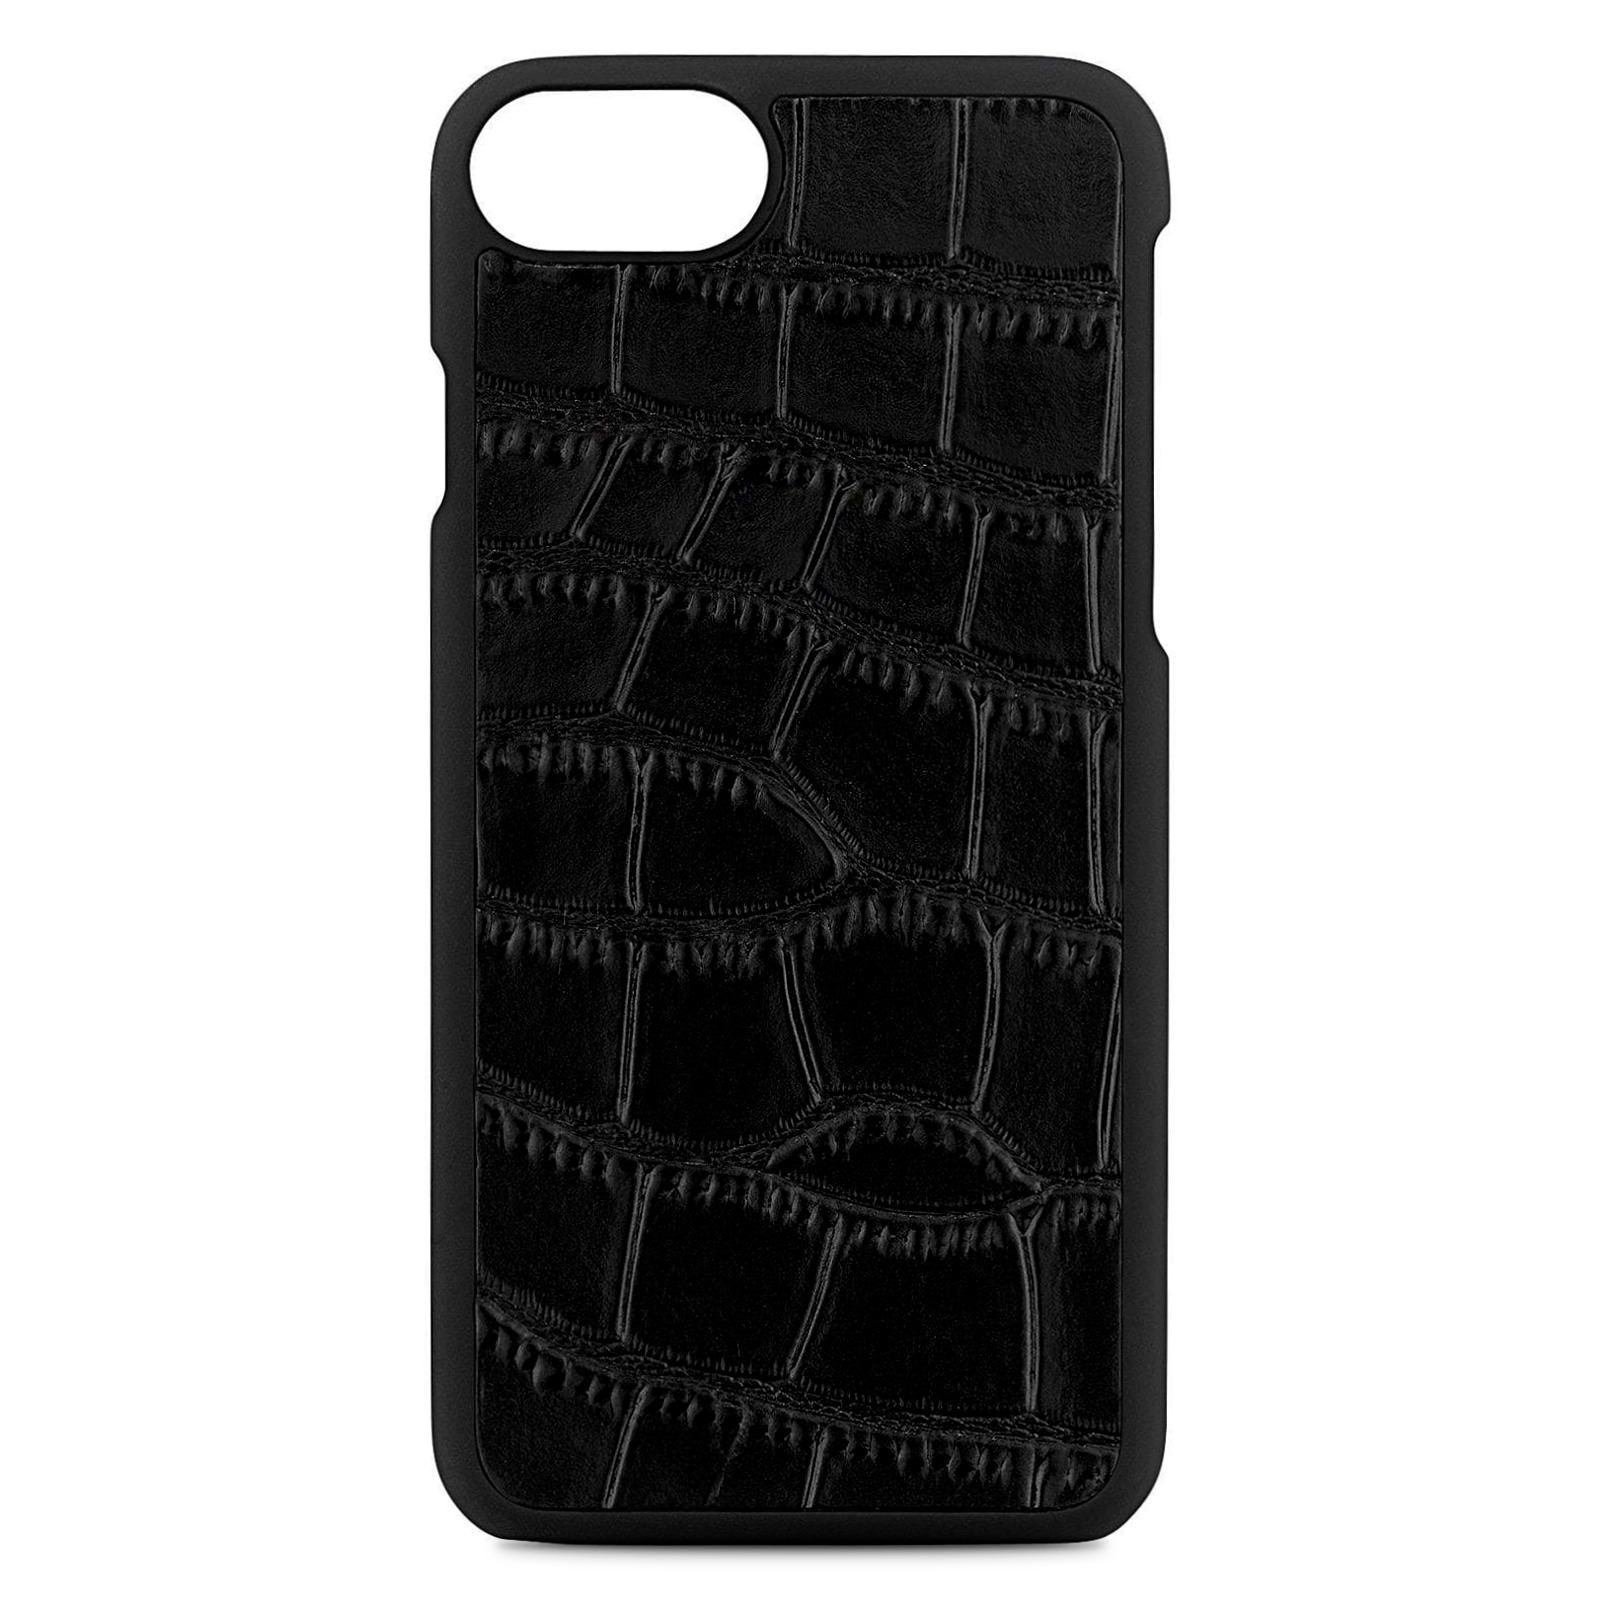 Blank Personalised Black Croc Leather iPhone Case